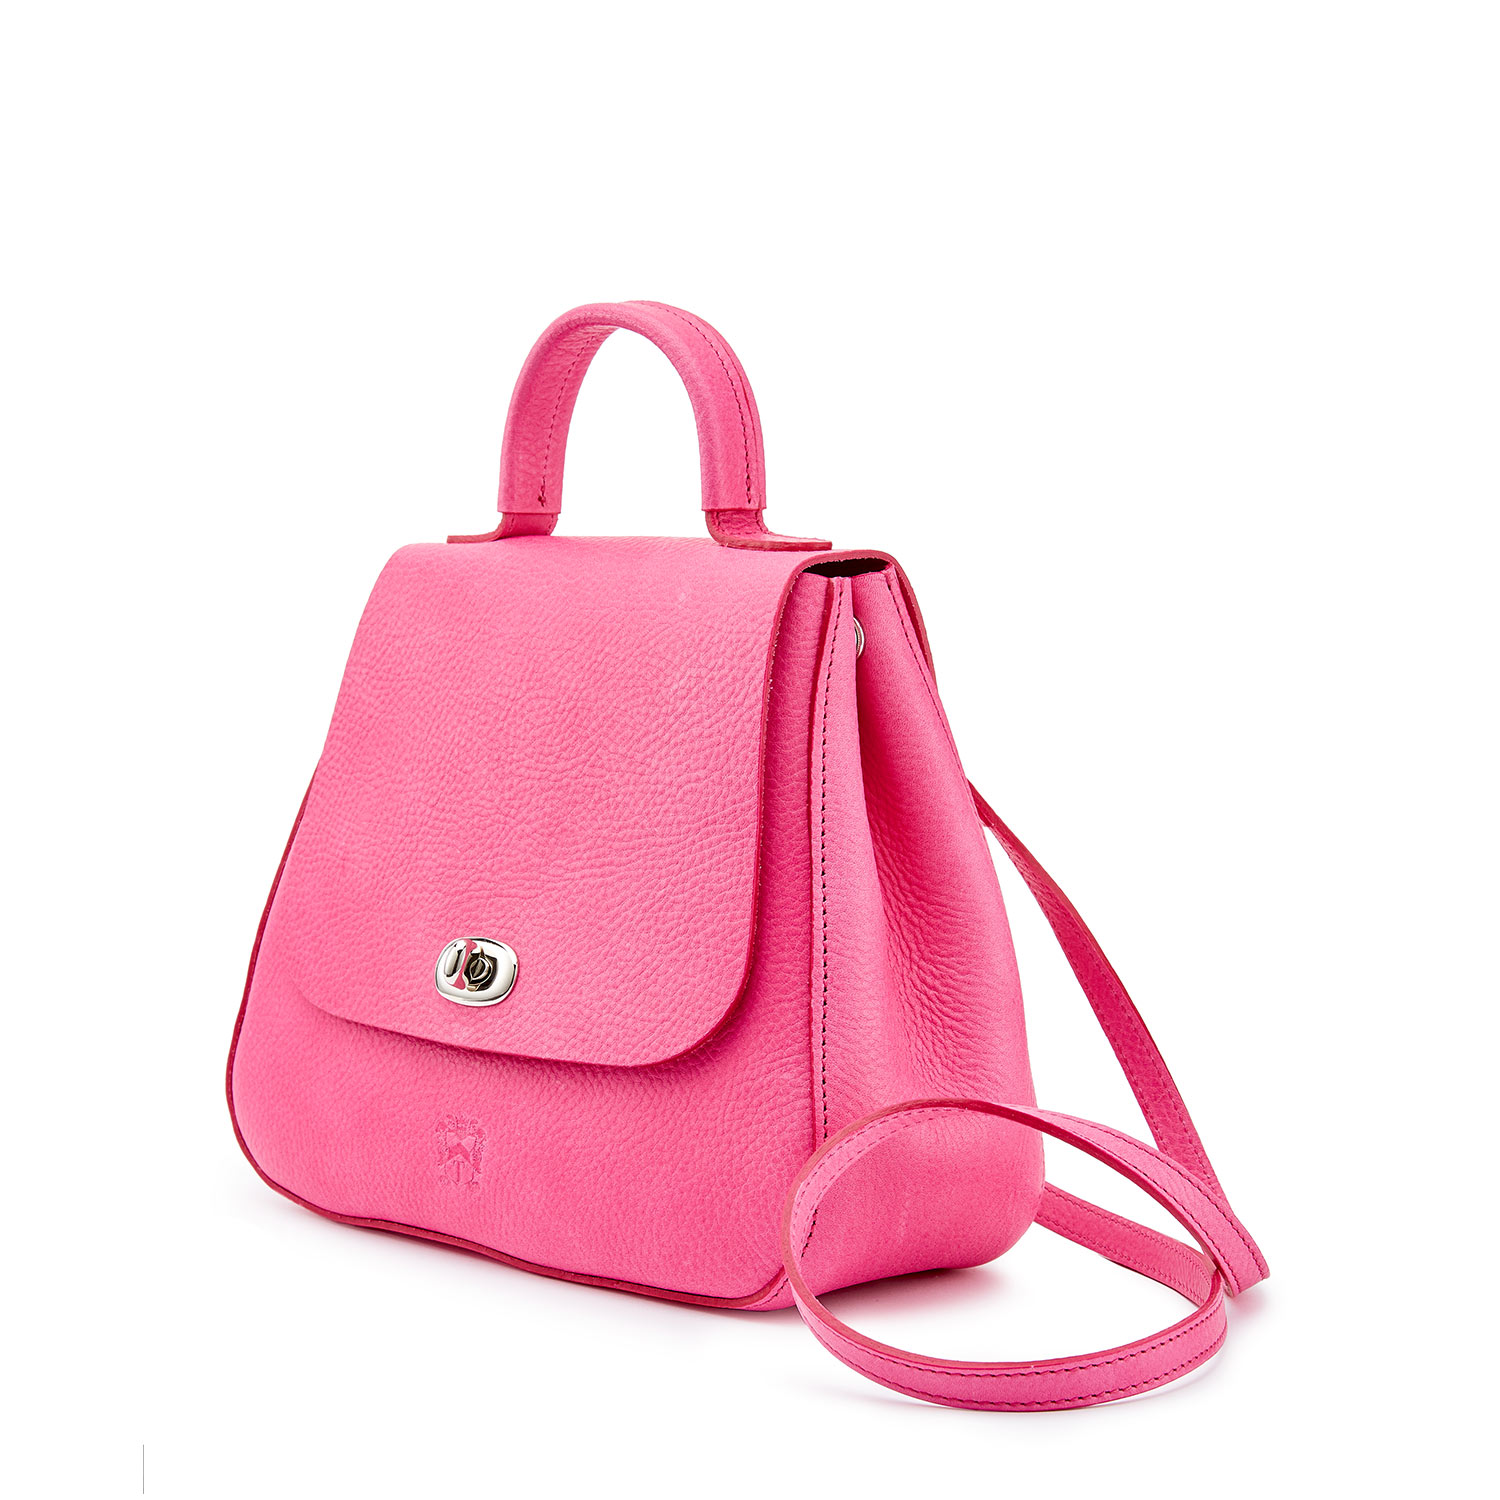 Tusting Leather Holly Handbag in Peony